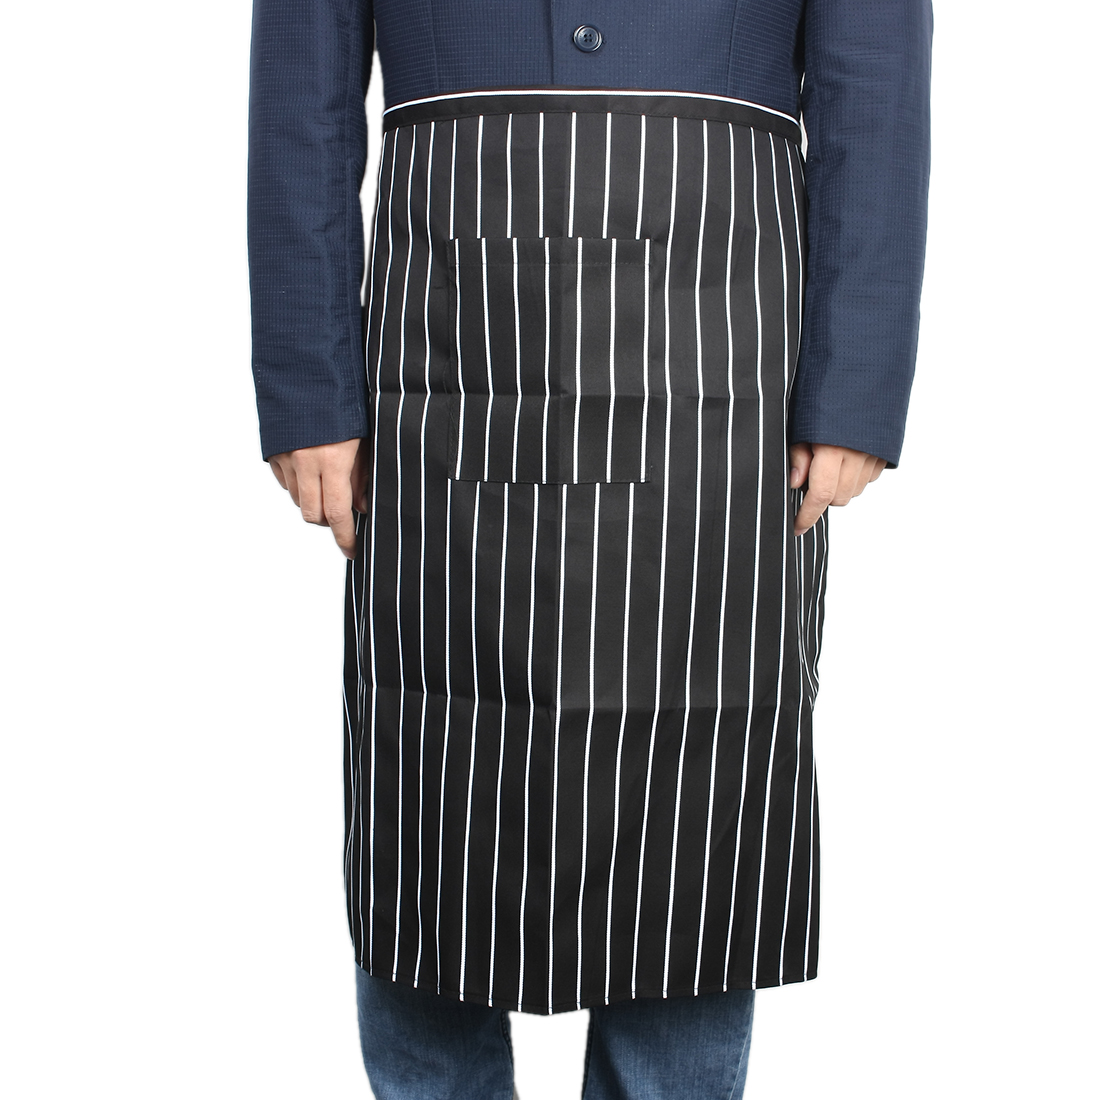 Lover Man Barber Shop Restaurant Cooking Strip Pattern Pocket Apron Bib Black